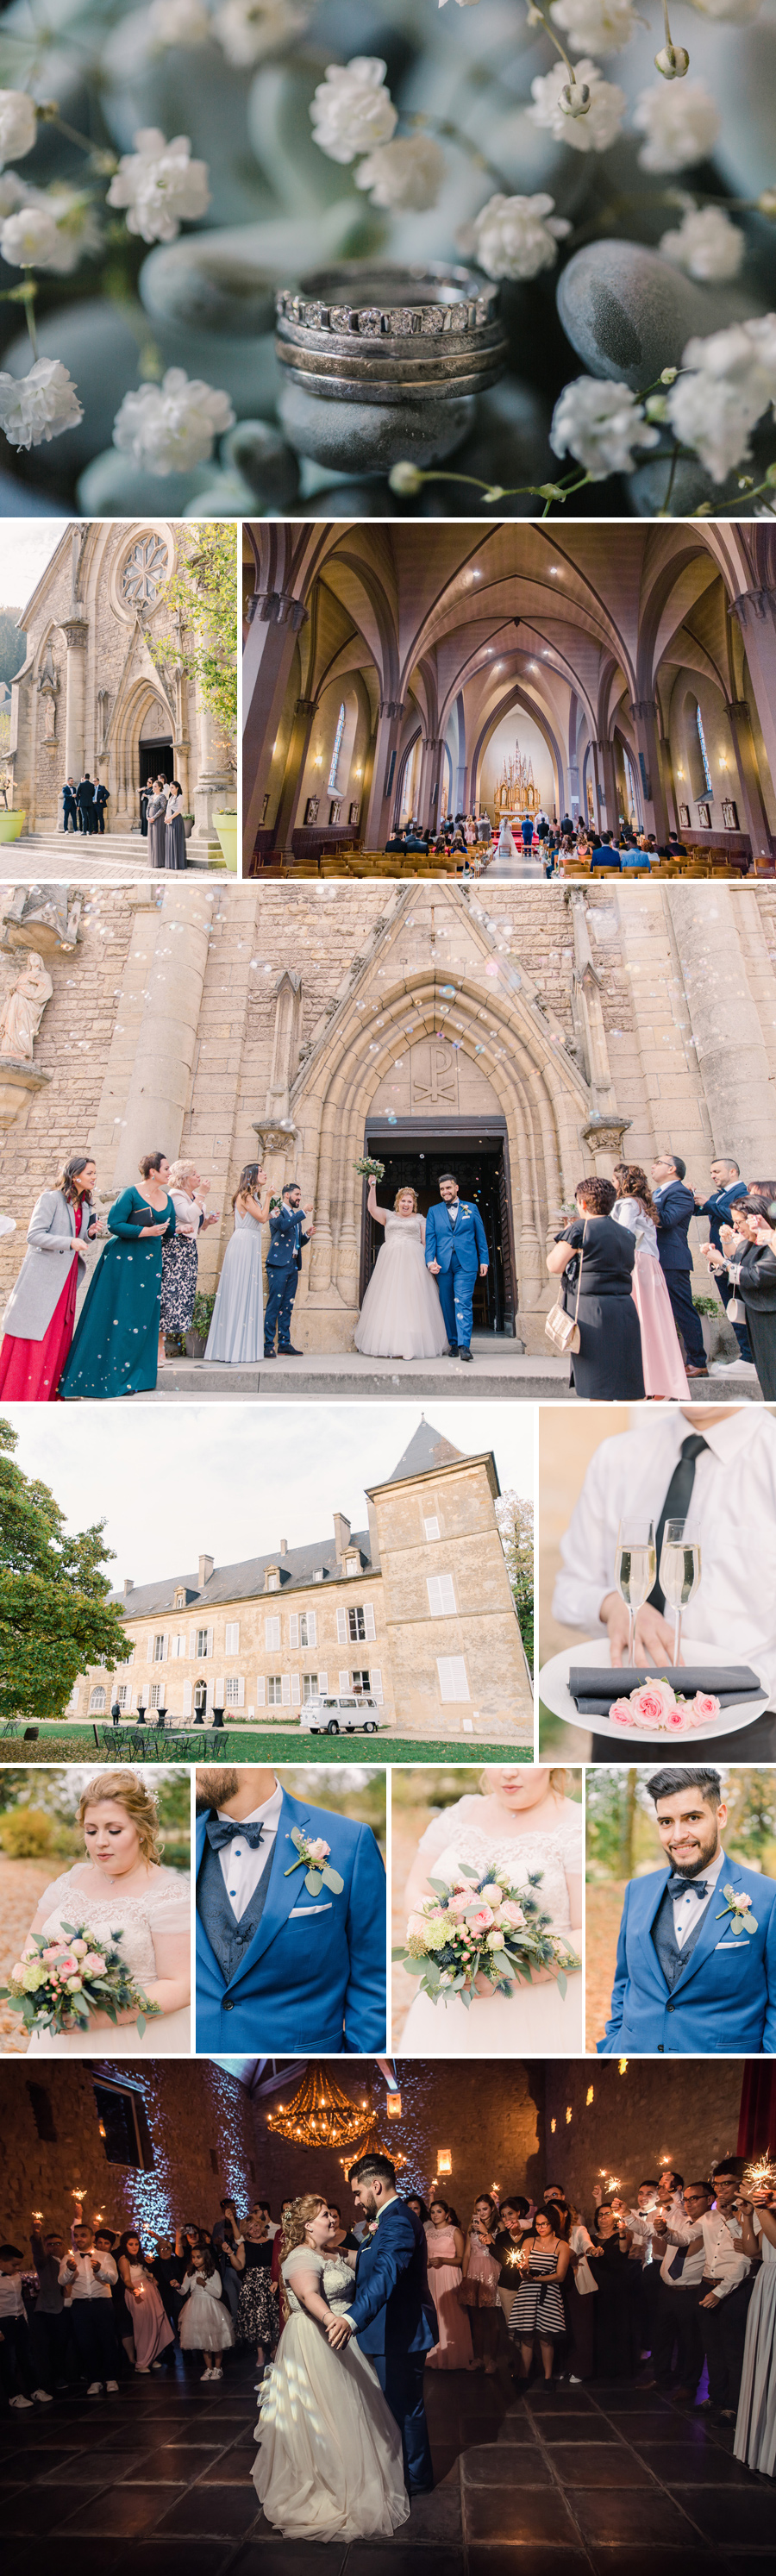 mariage chateau preisch luxembourg photographe